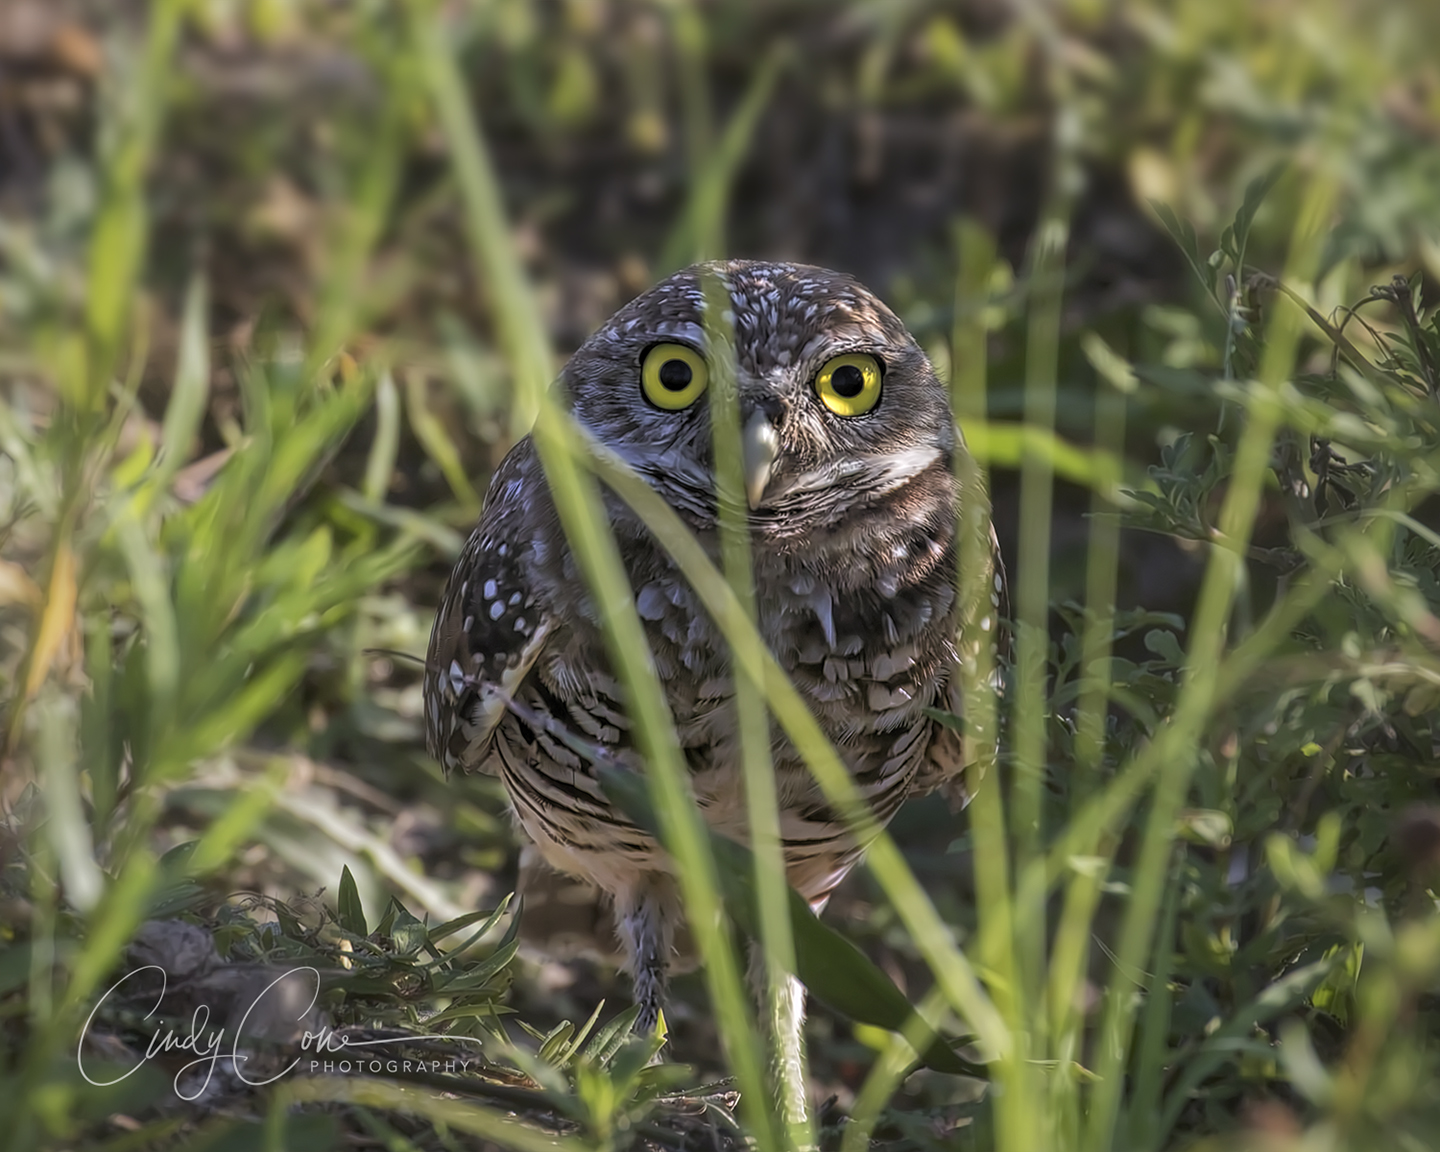 A burrowing owl behind the grass, Cape Coral, Florida